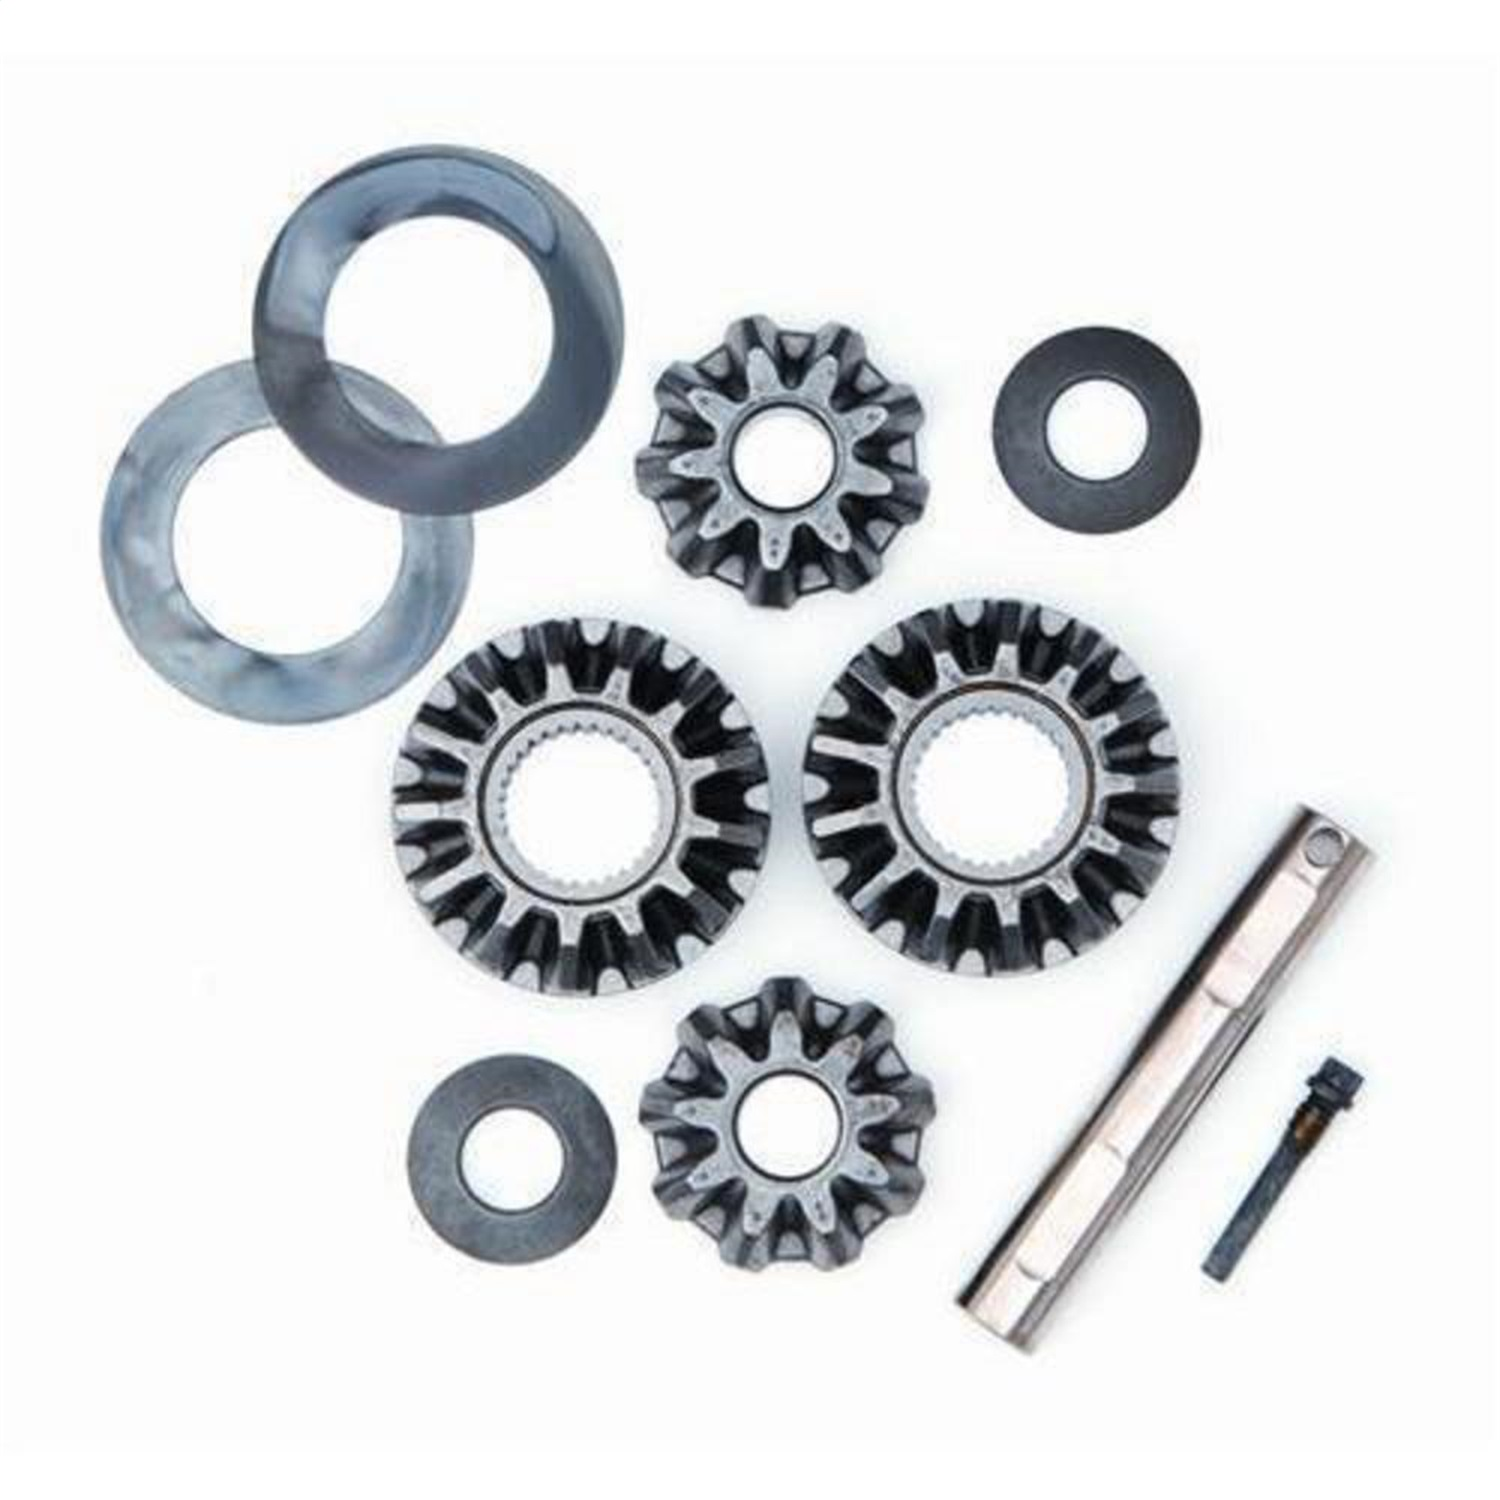 G2 Axle and Gear 20-2022-30 Ring and Pinion Installation Kit